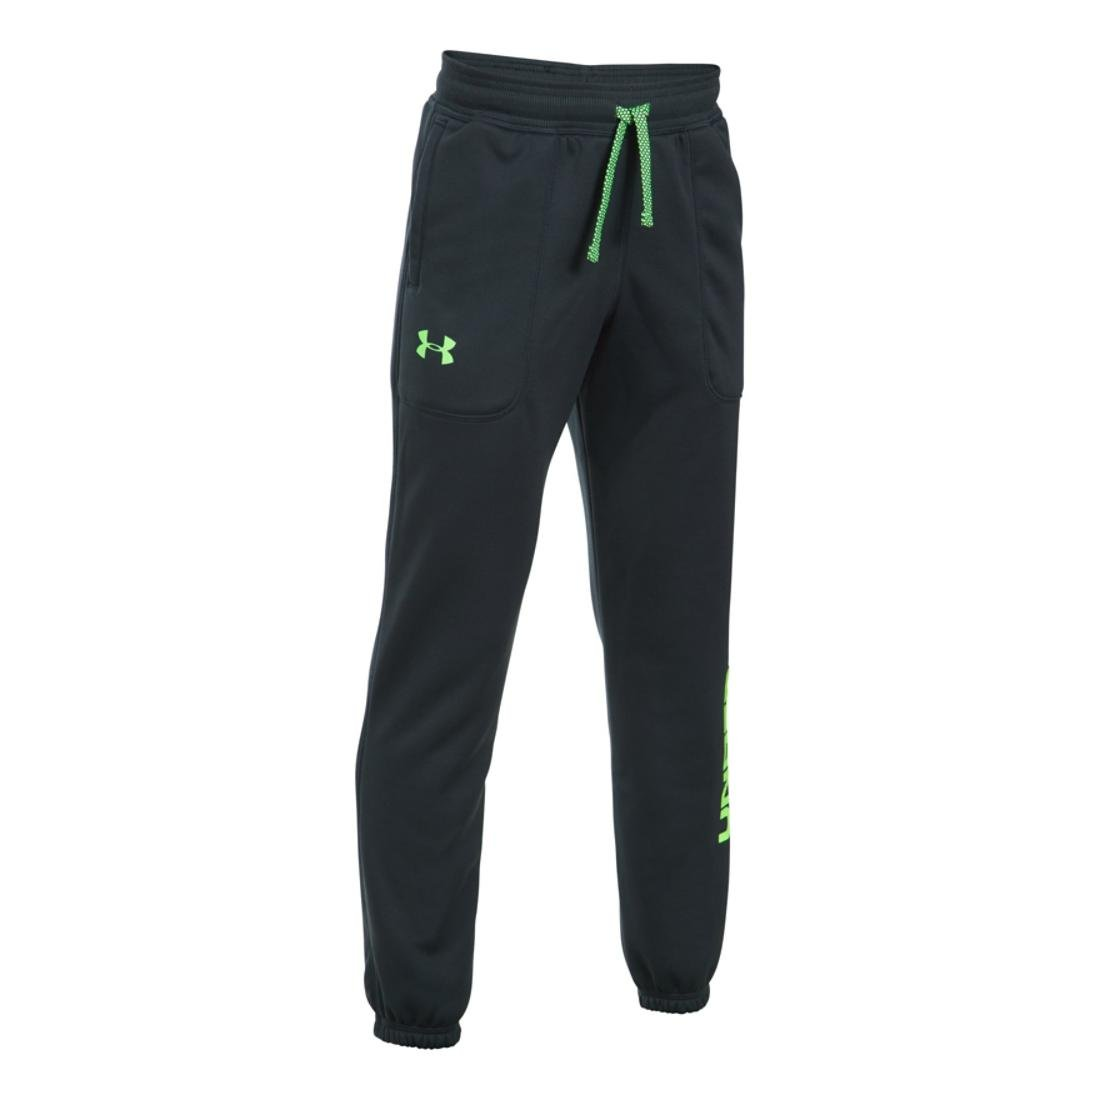 Under Armour Boys Armour Fleece Jogger, Anthracite/Lime, XL (18-20 Big Kids) x One Size by Under Armour